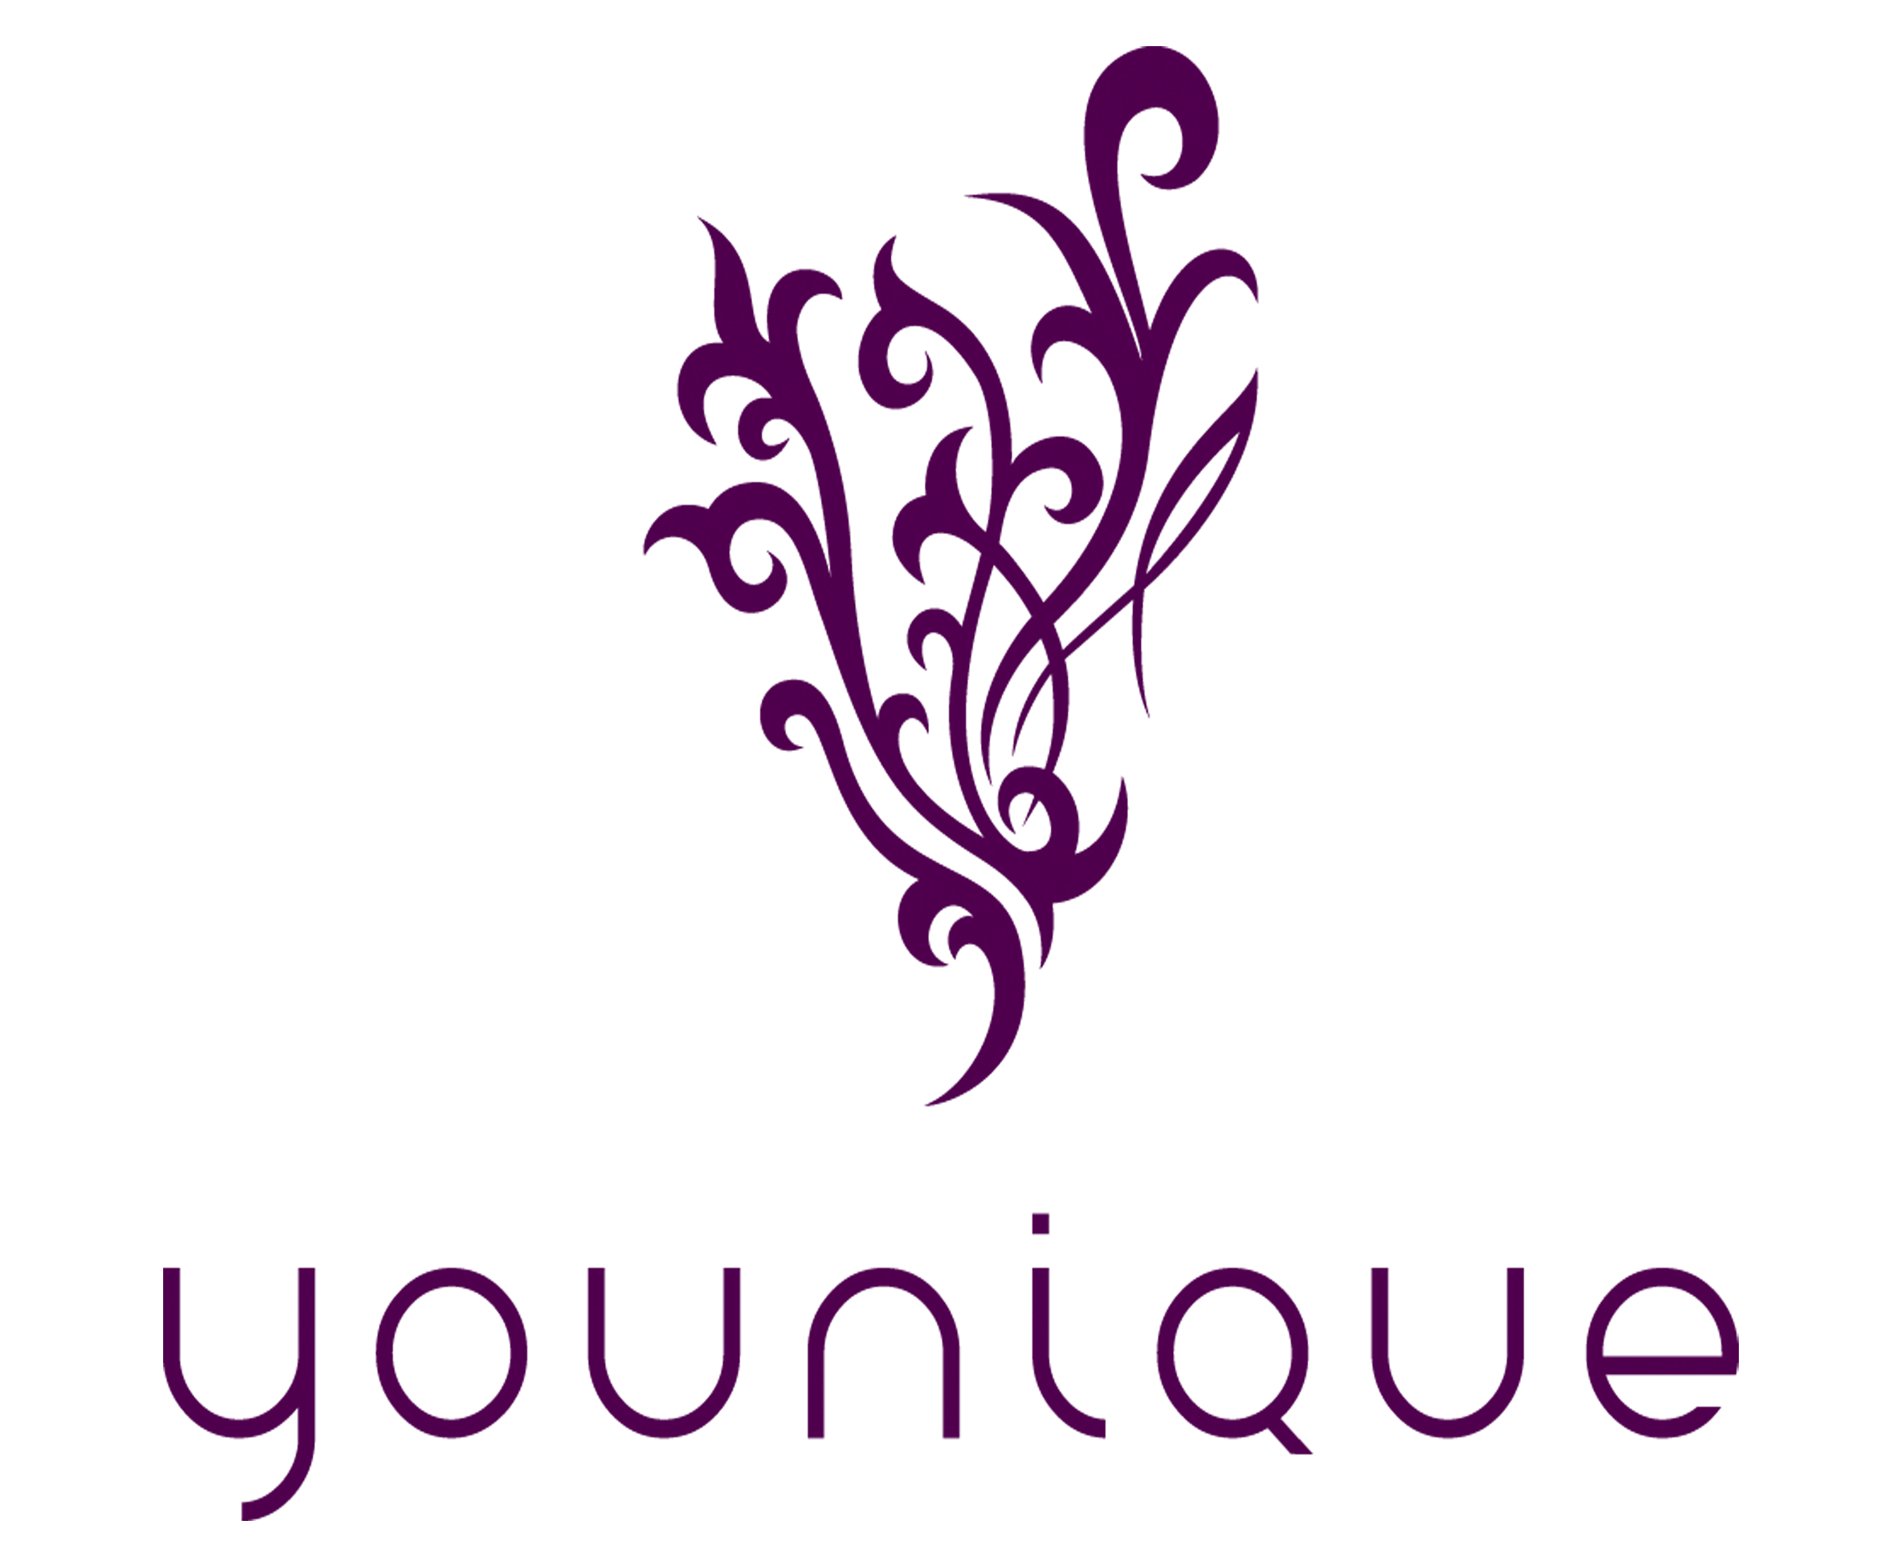 Younique Logo, Younique Symbol, Meaning, History and Evolution